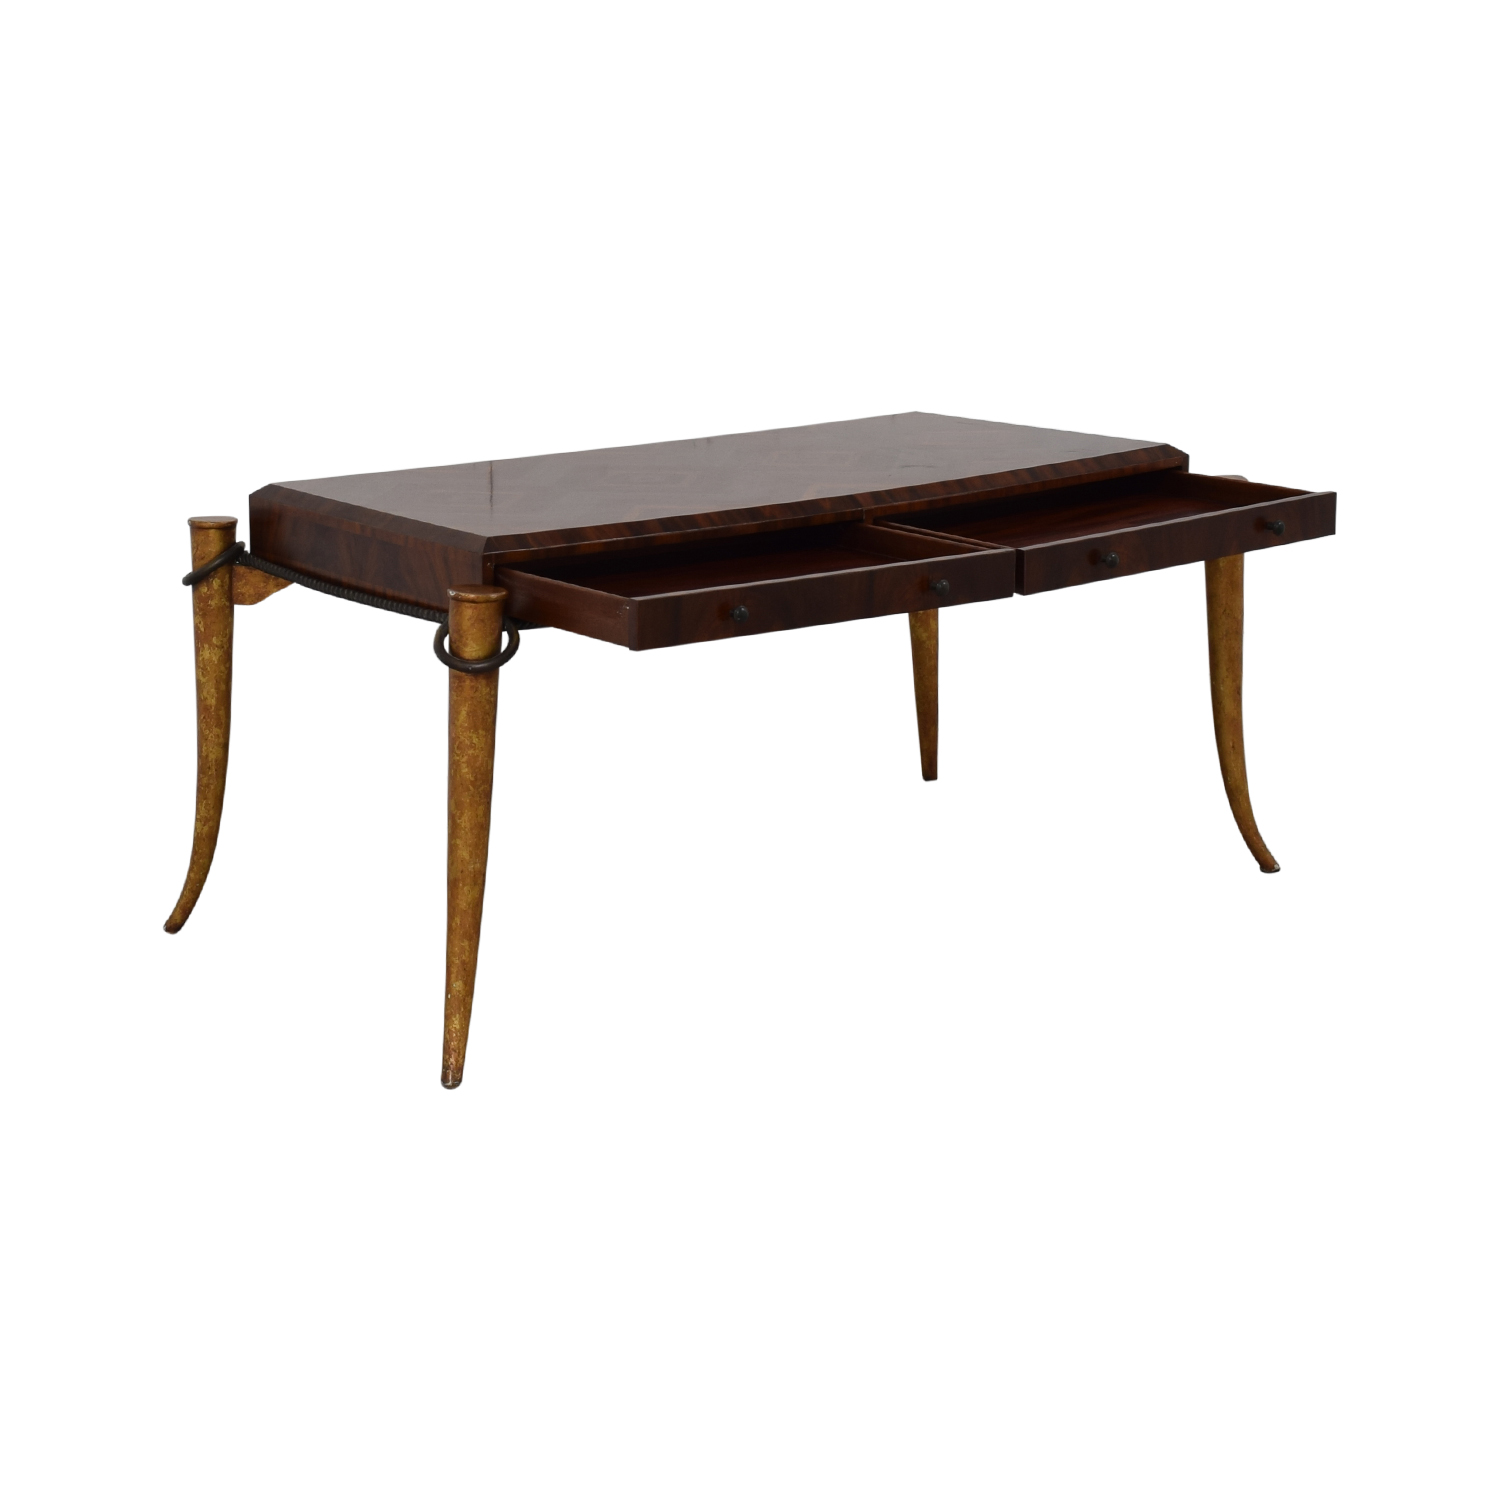 Maitland-Smith Maitland-Smith Rosewood Inlaid Desk dimensions